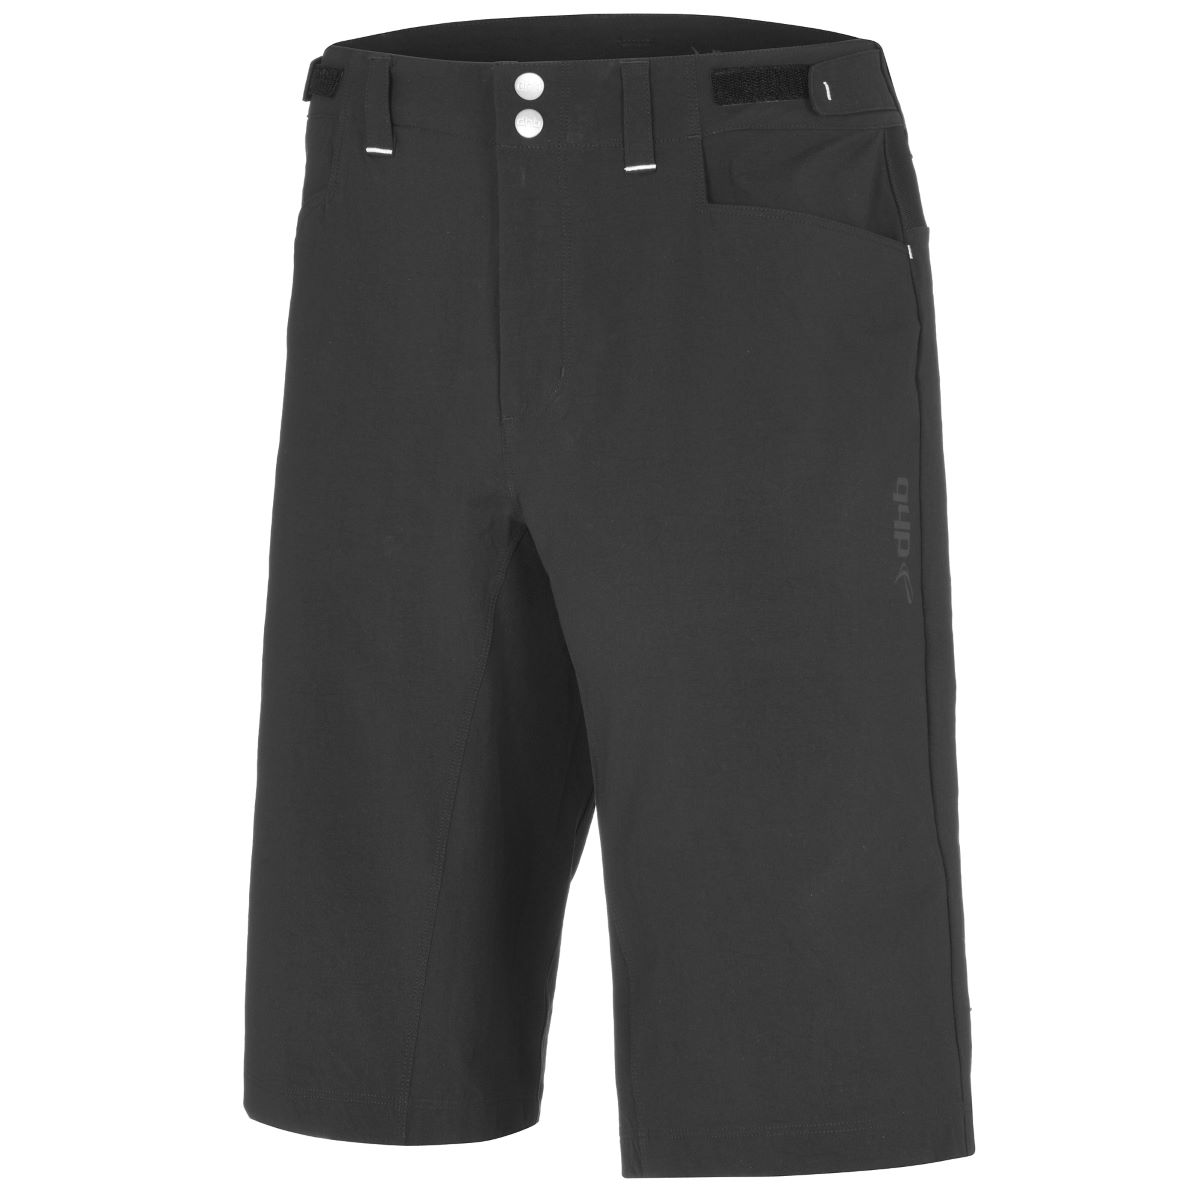 Short baggy VTT dhb Trail - Small Noir Shorts VTT